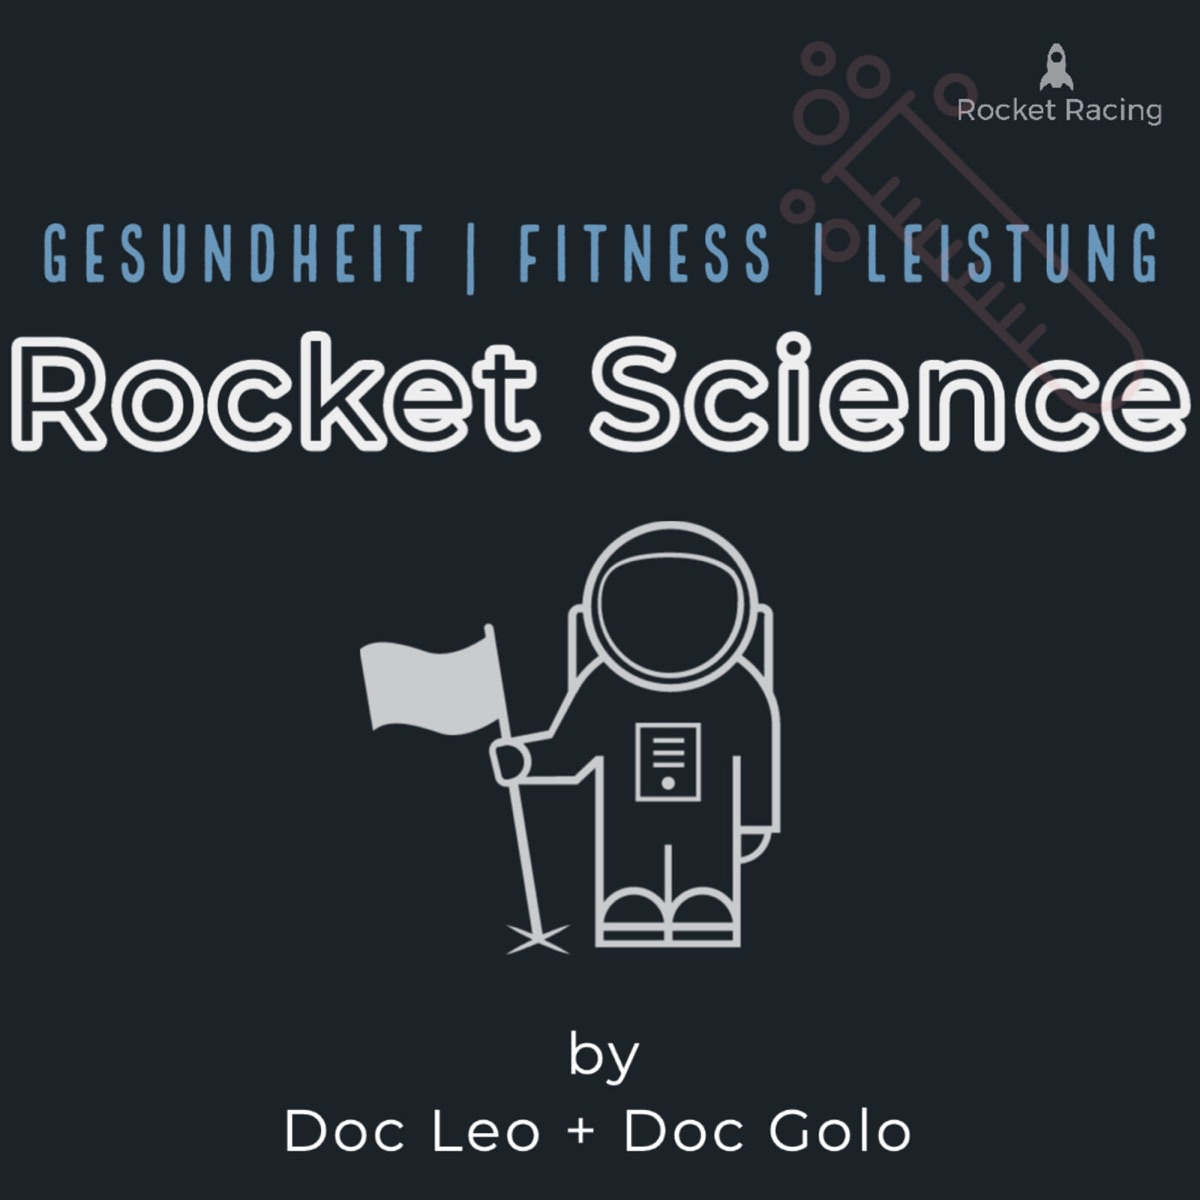 Rocket Science | Gesundheit - Fitness - Leistung | by Doc Leo, Doc Golo + Rocket Racing